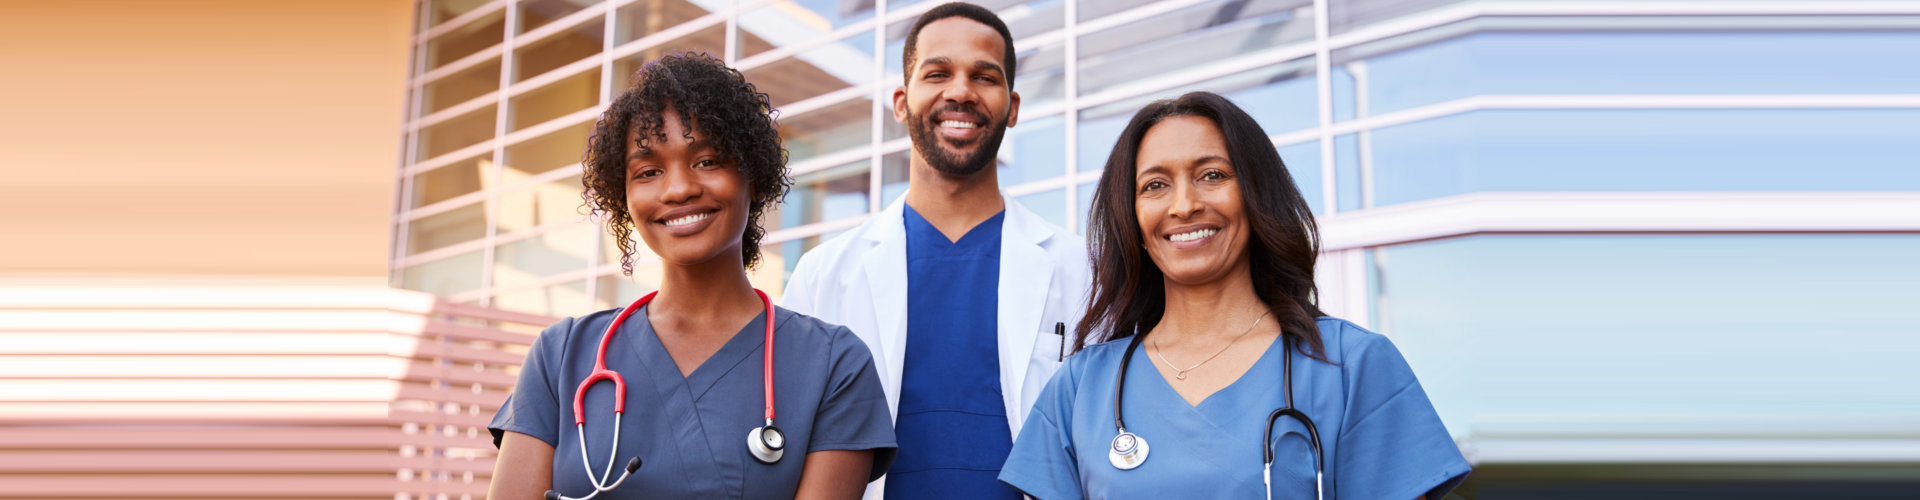 happy medical workers